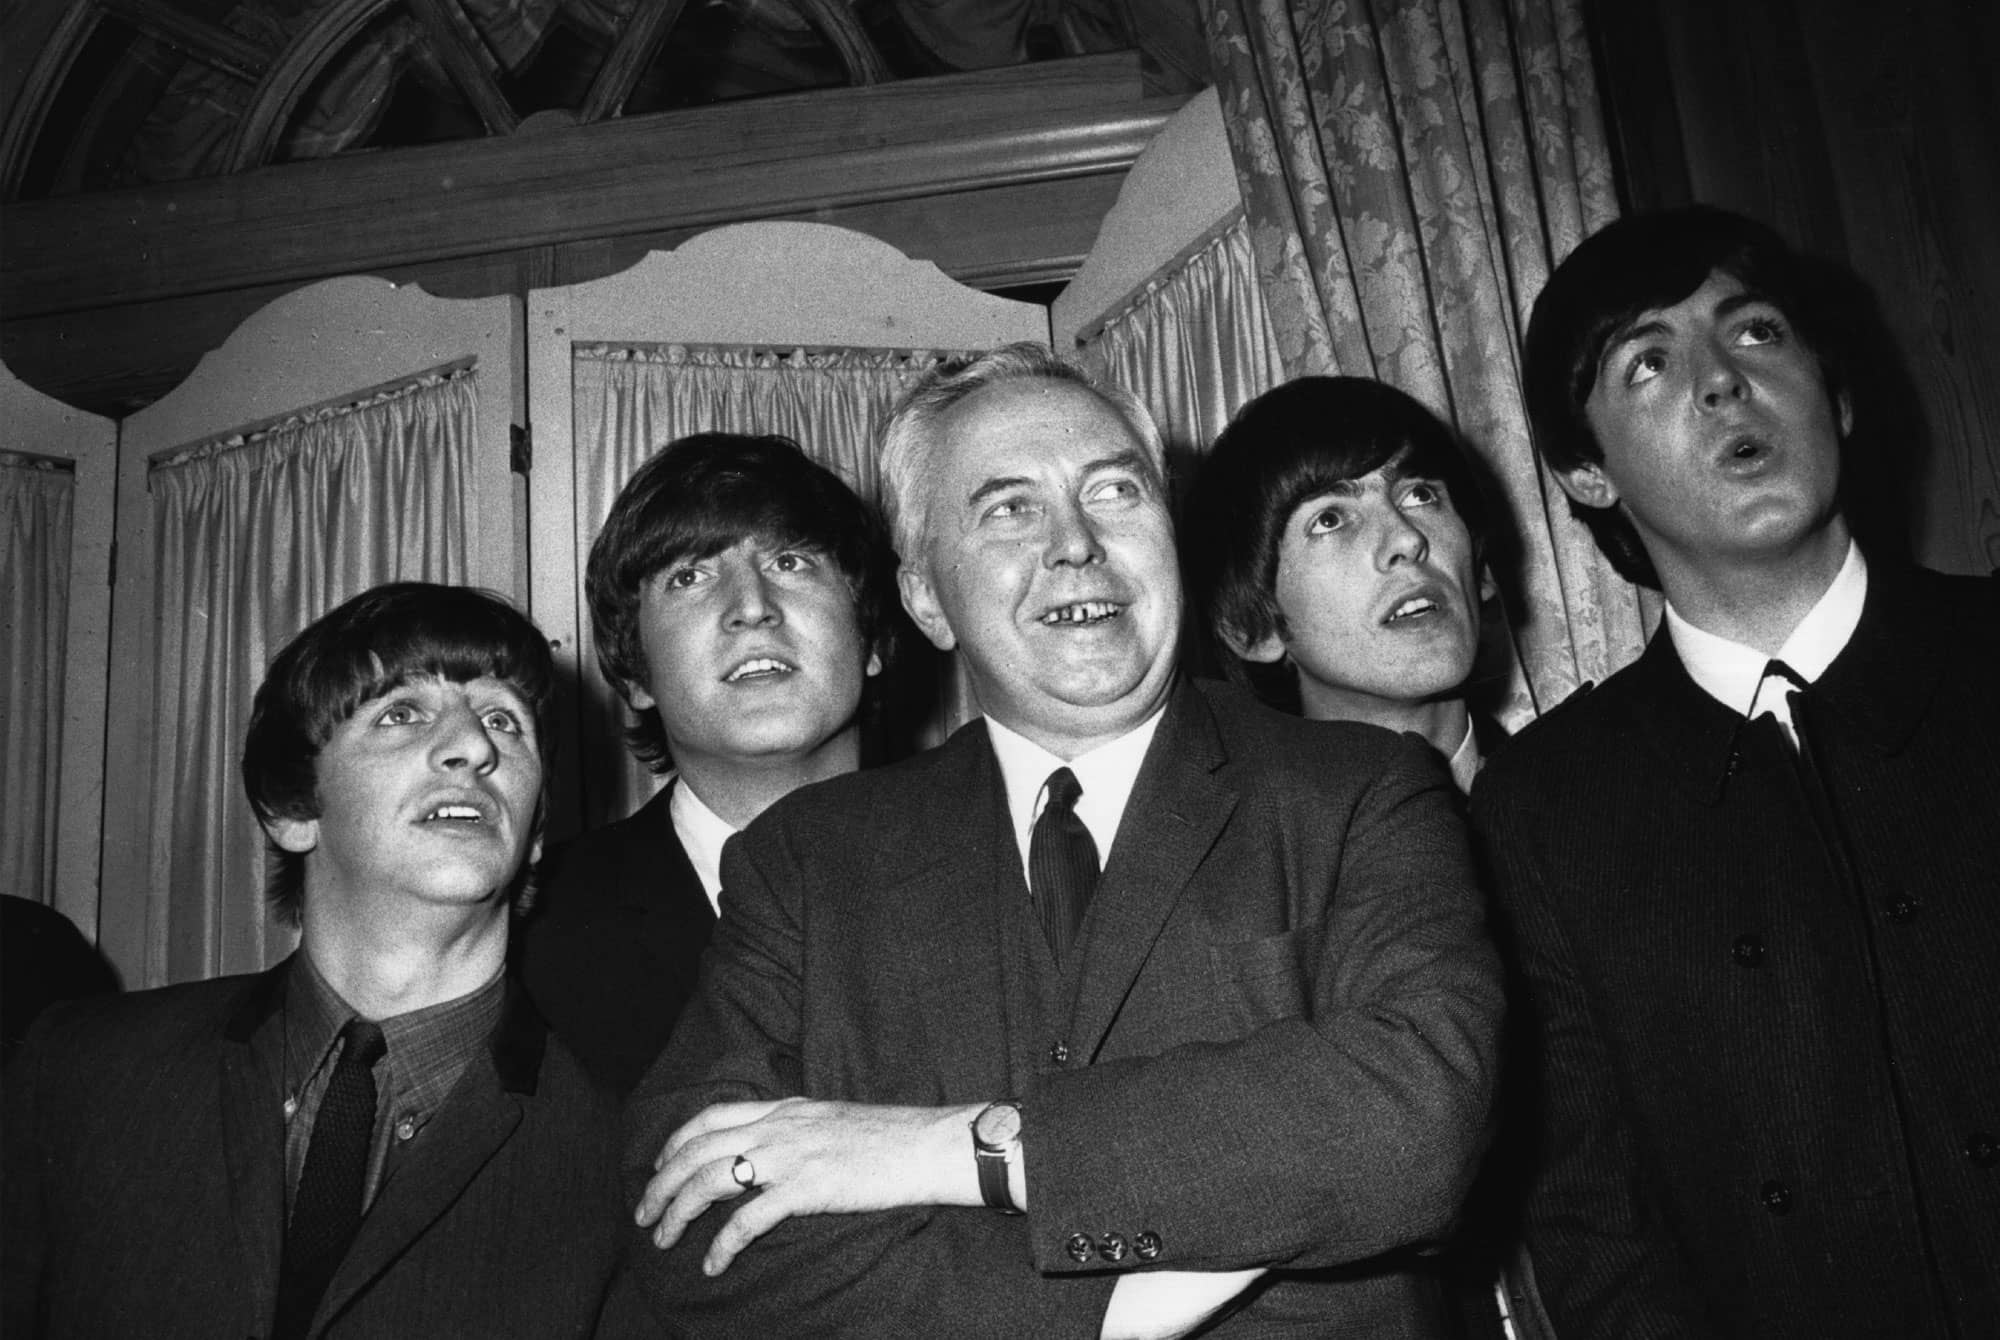 The Beatles with UK prime minister Harold Wilson, 19 March 1964